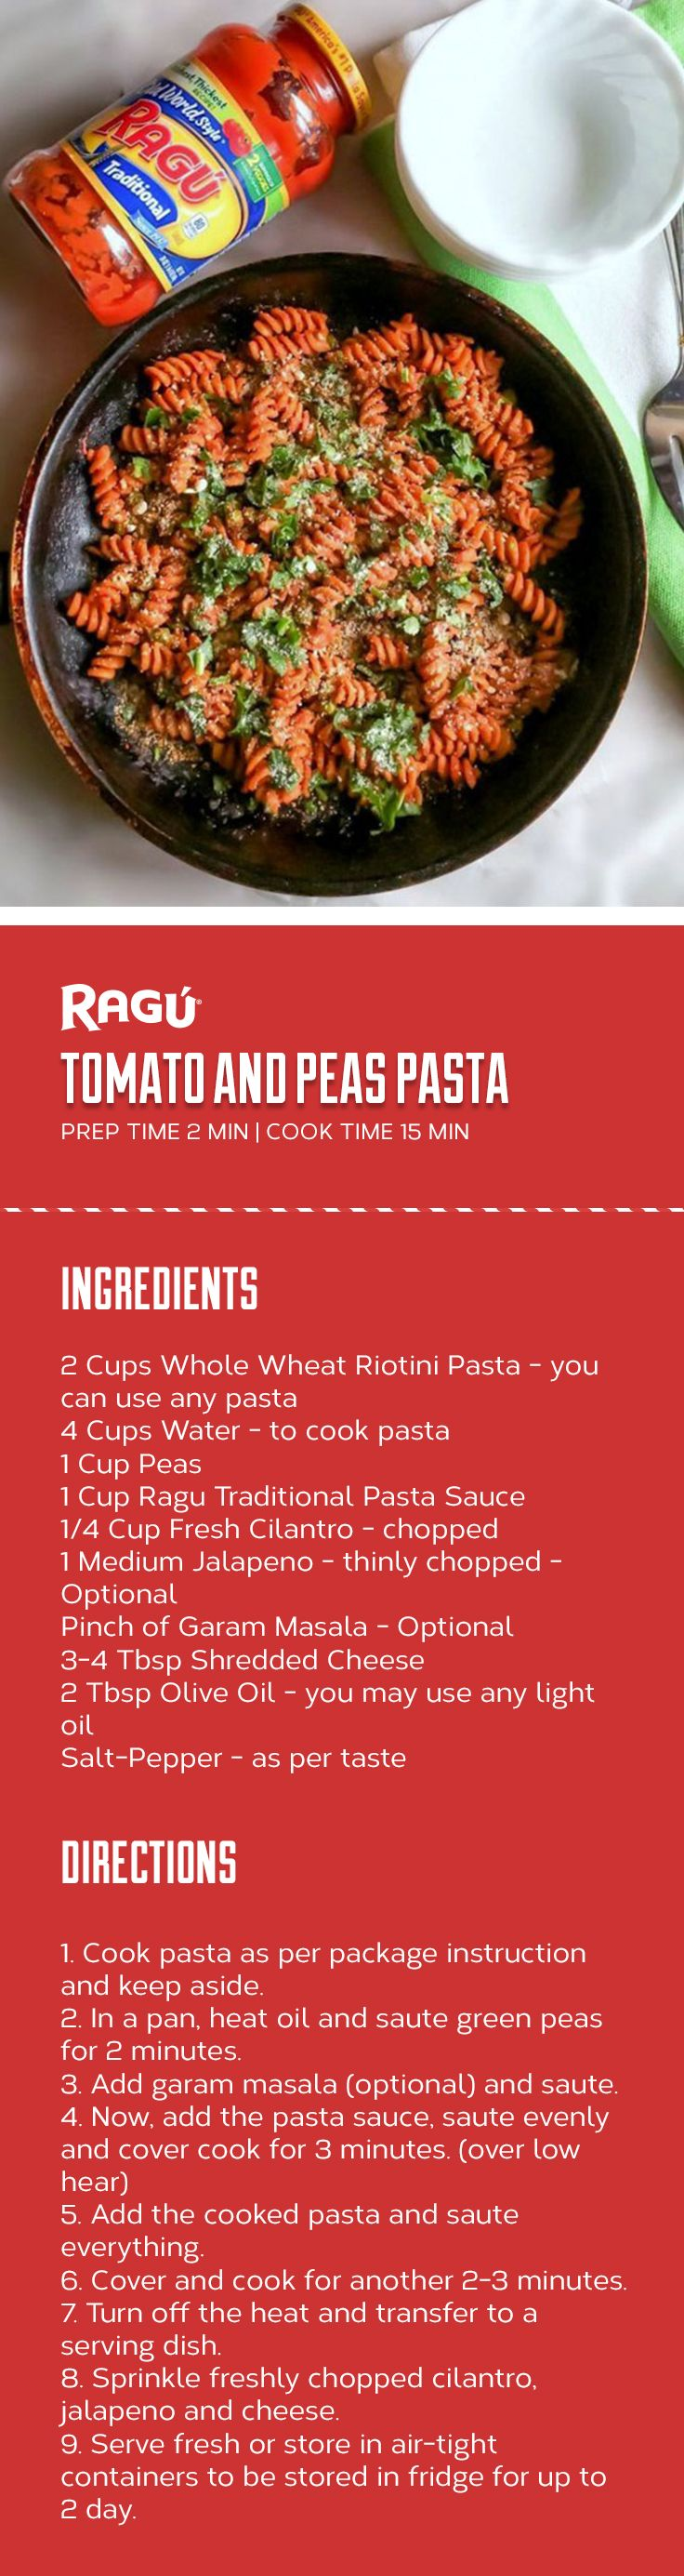 Everyone could use a little extra help in the kitchen – especially when it comes to meal planning. We asked one of our favorite bloggers to use RAGÚ sauce as their inspiration for a dish, so @easycookin2012 made us her tasty Tomato and Peas Pasta.